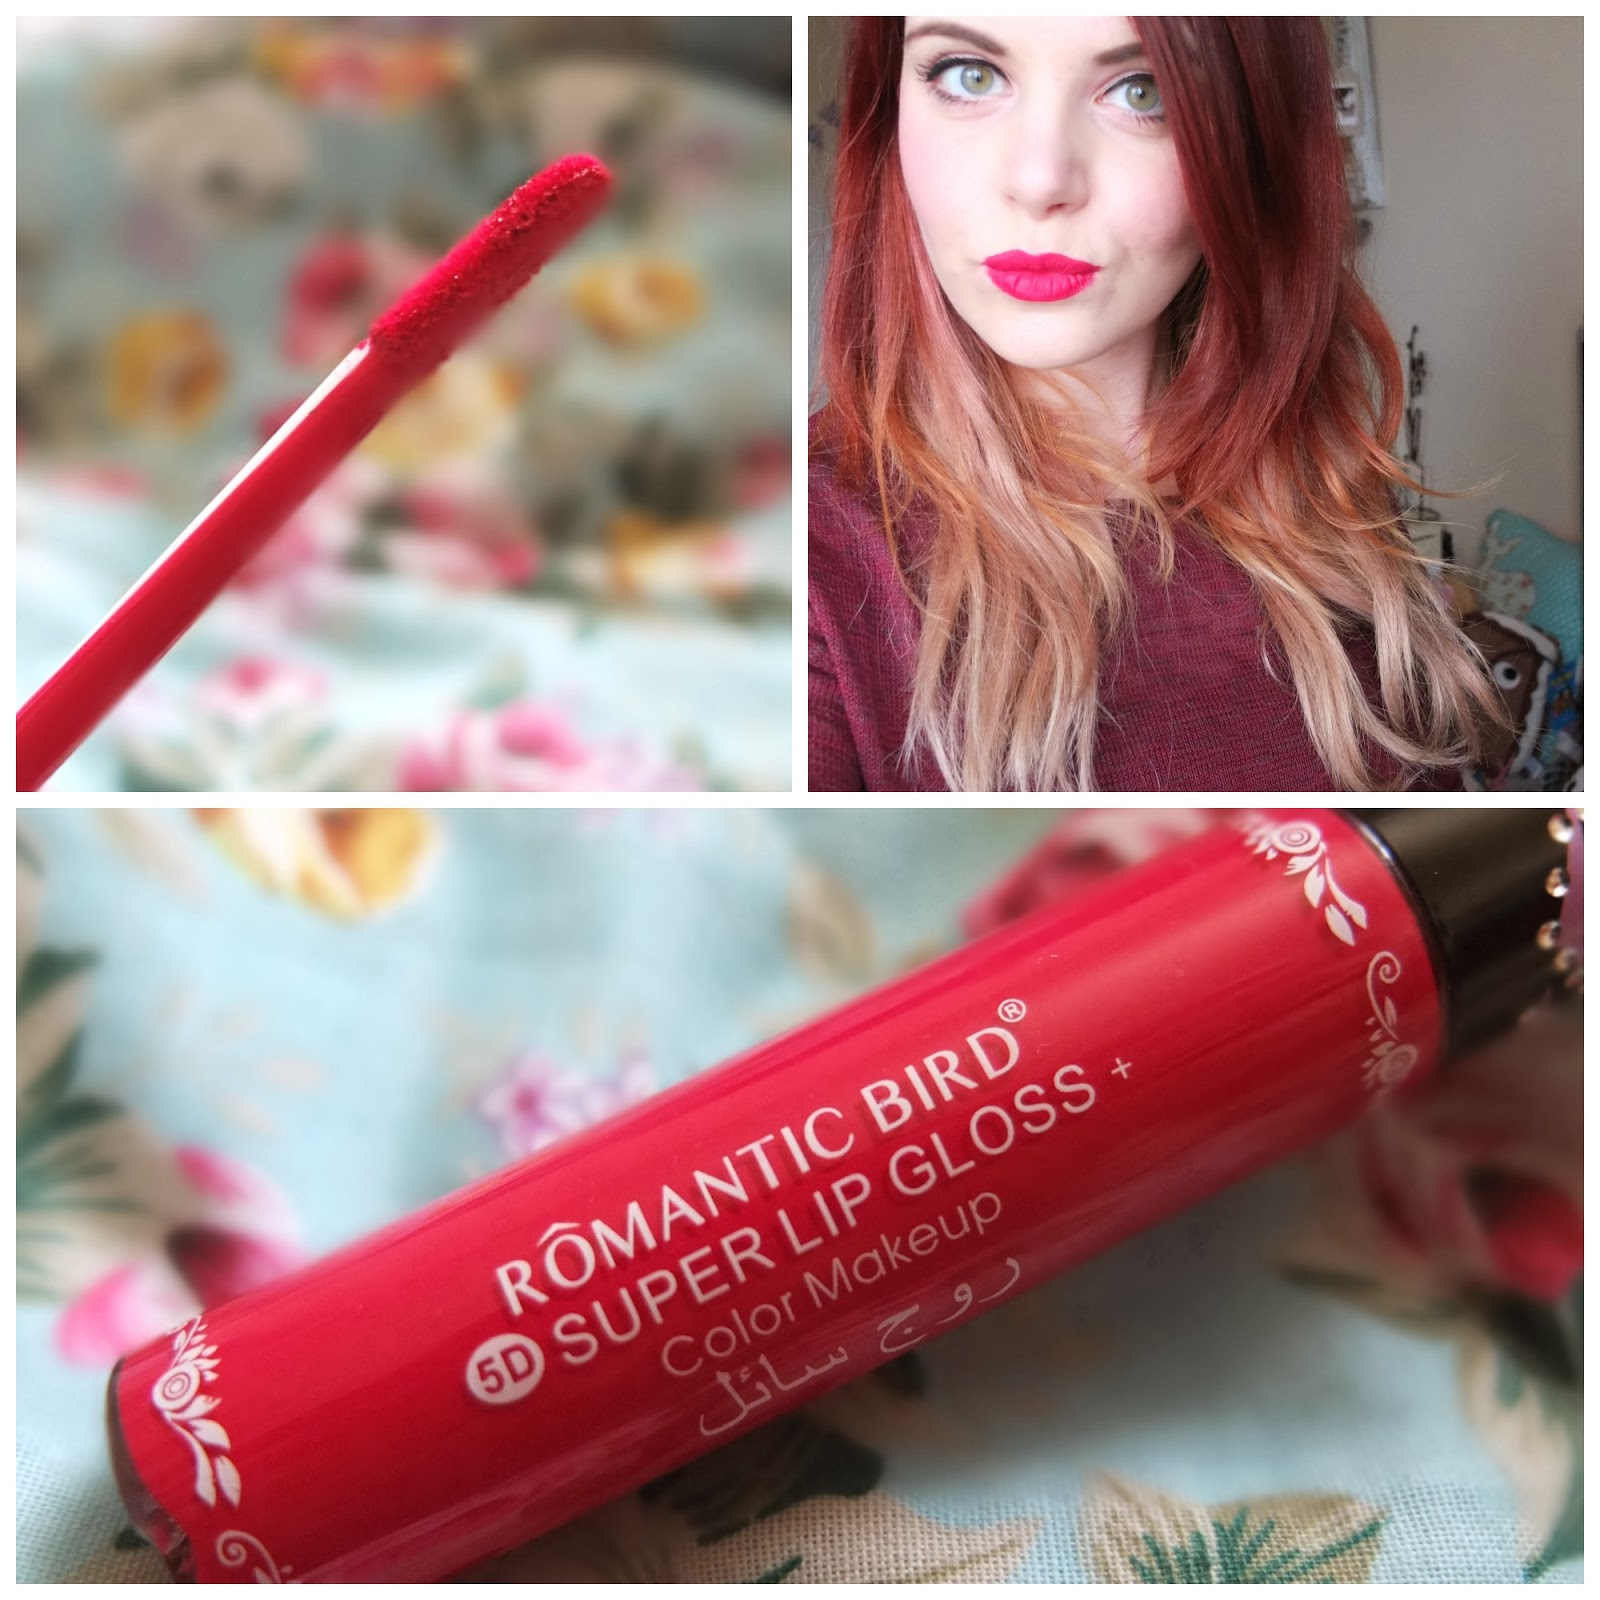 Romantic Bird make up. The best budget beauty brand discovery of the year on Hello Terri Lowe - UK Beauty Blog.